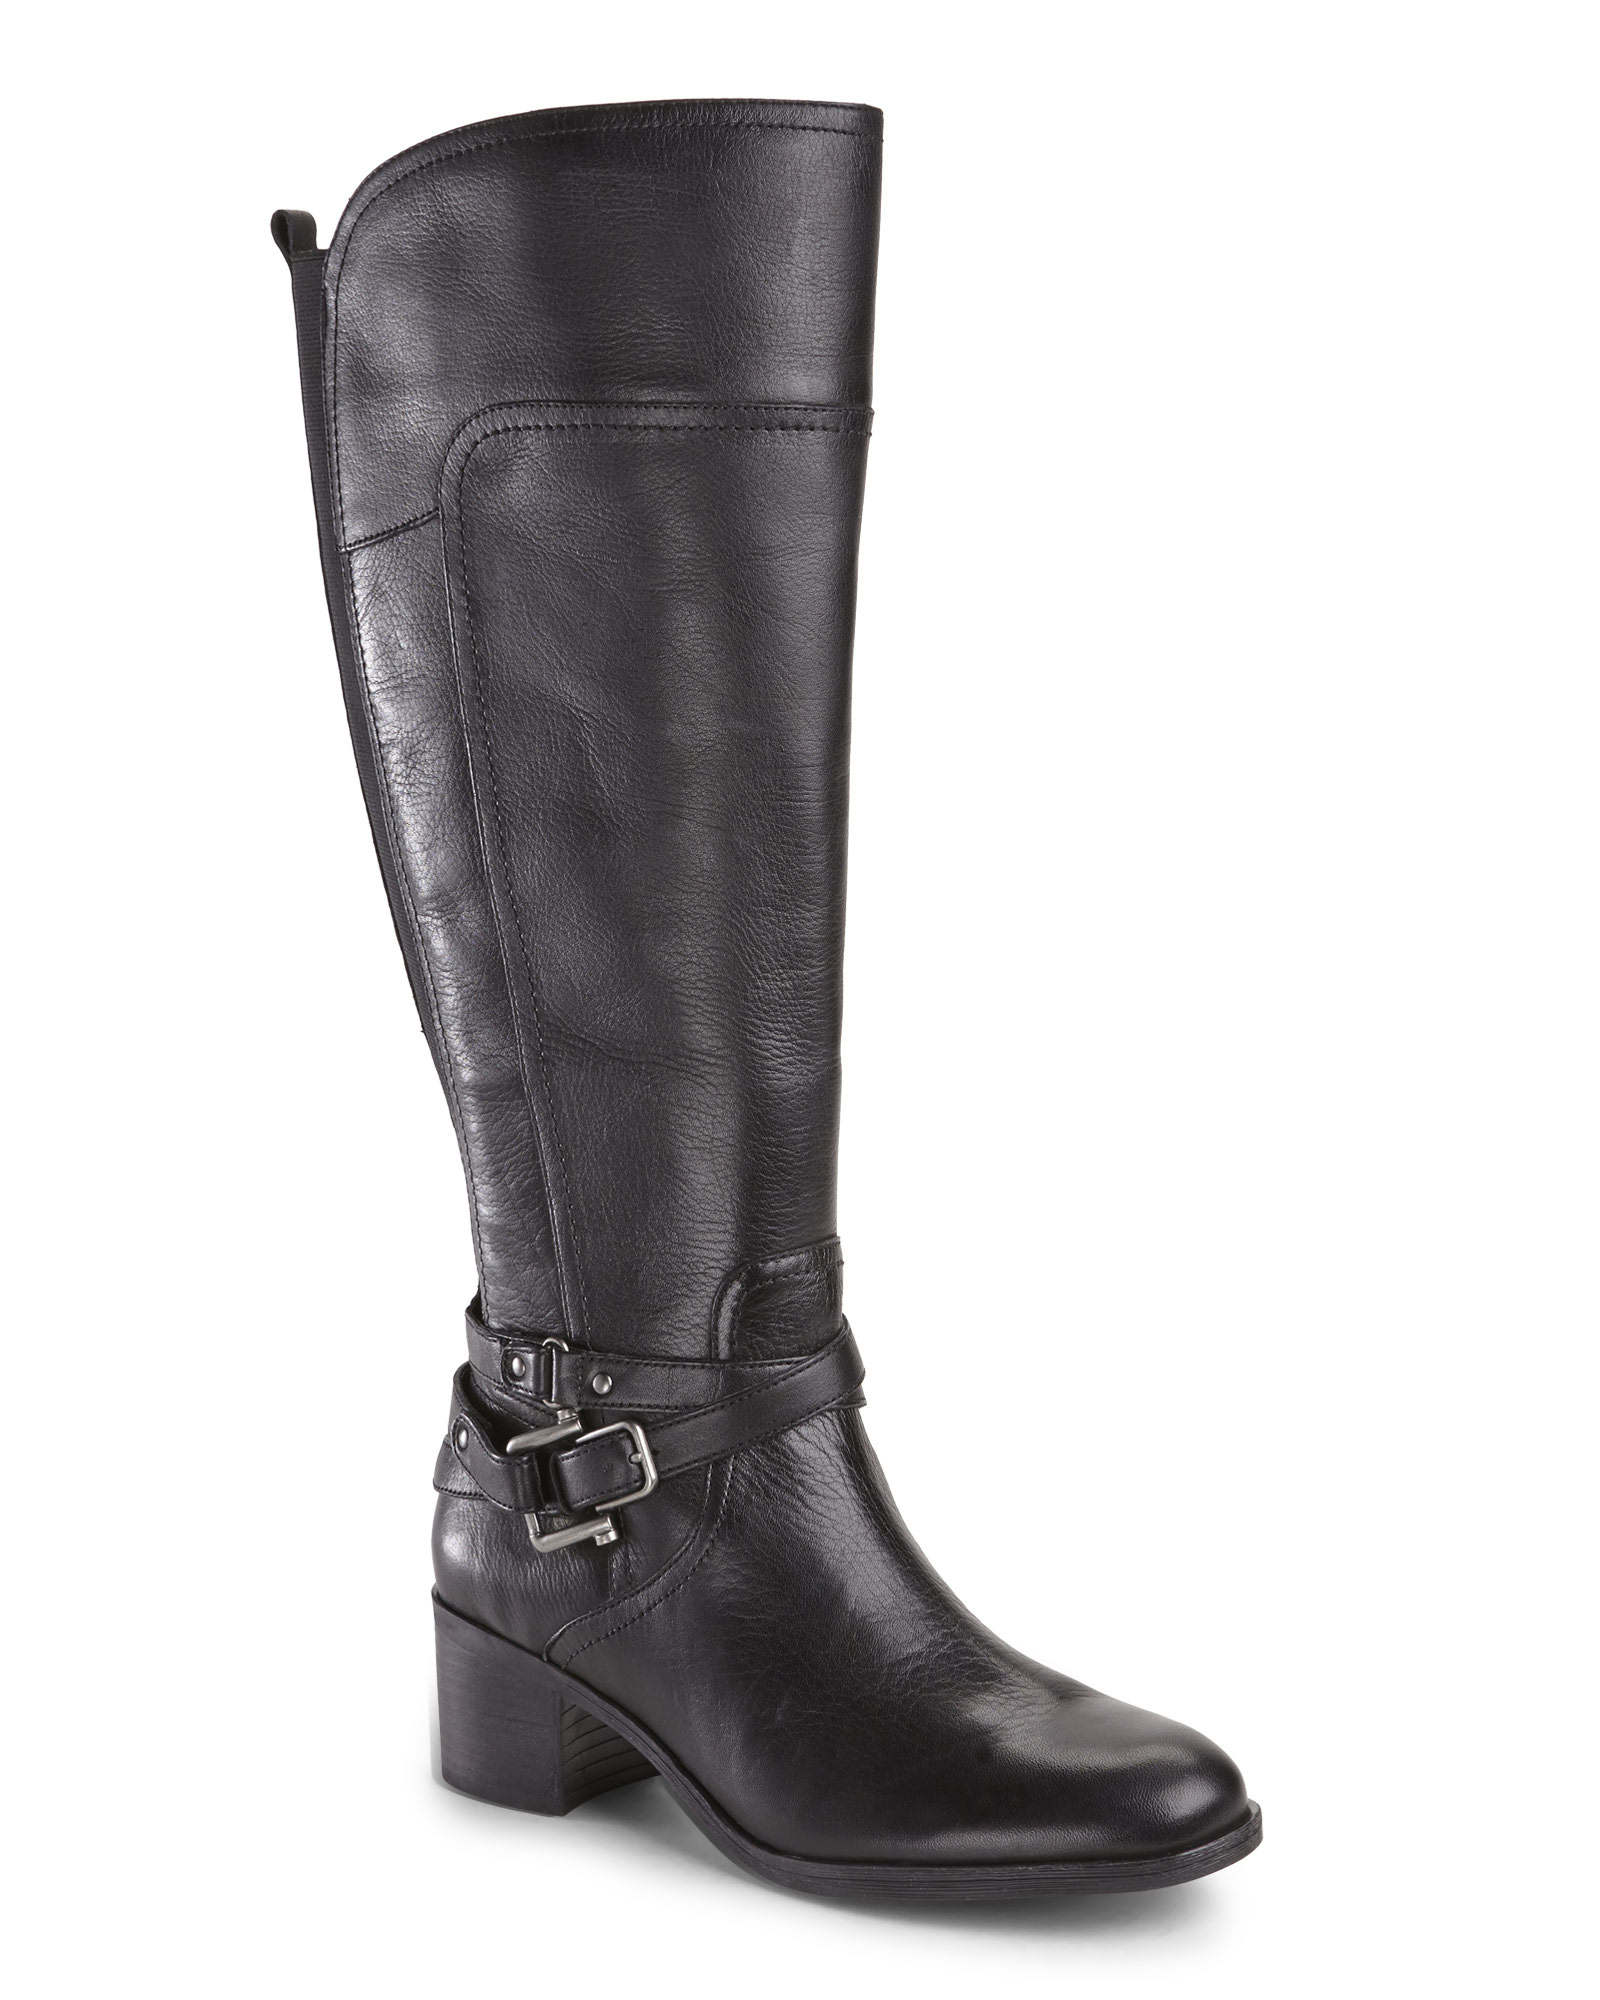 Marc fisher Black Kacee Wide Calf Riding Boots in Black | Lyst